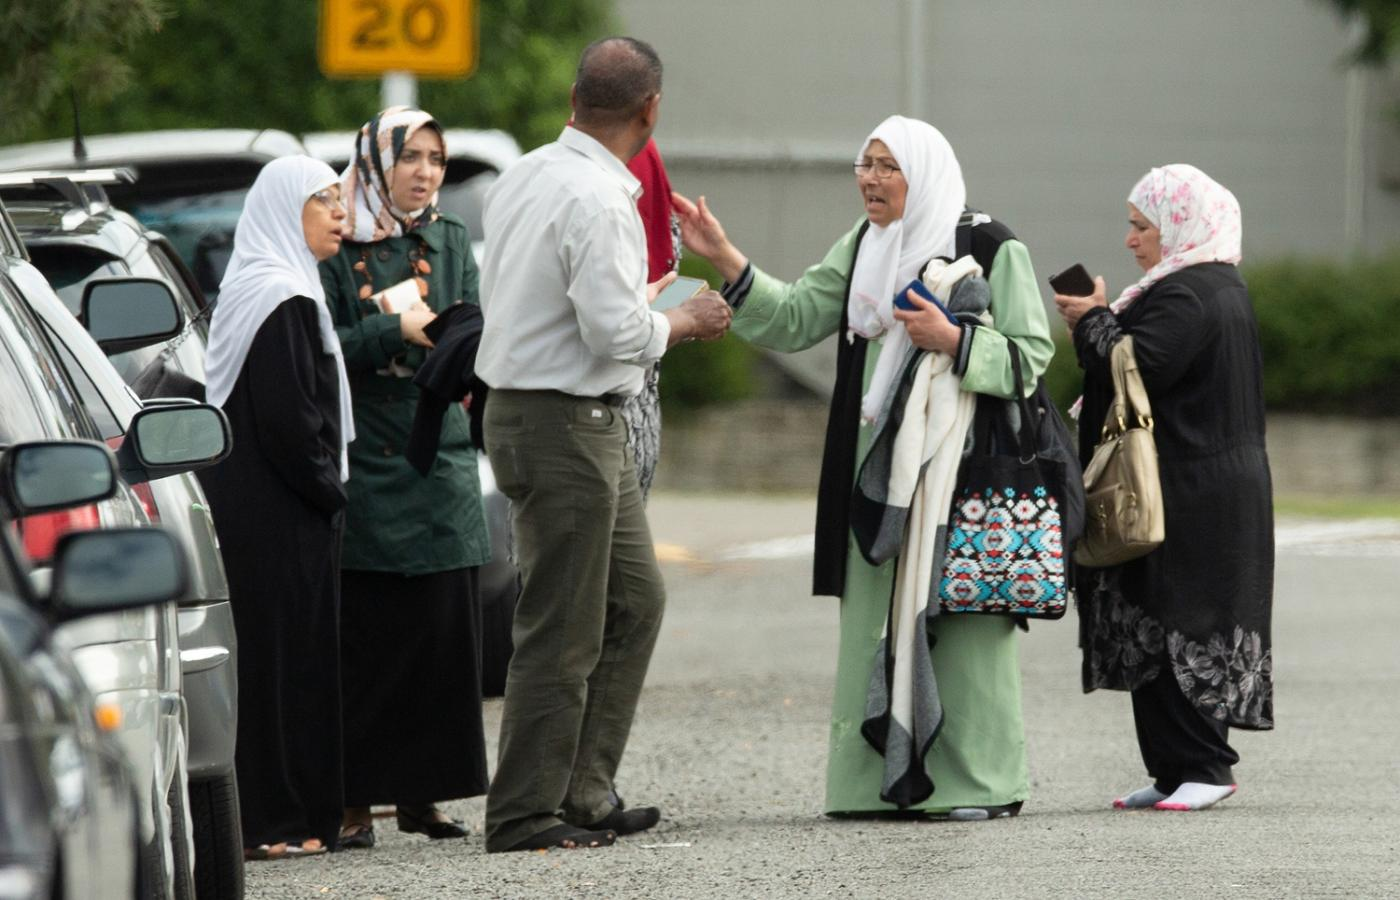 Nowa Zelandia Atak News: New Zealand Mosque Attack Survivors Describe Tales Of